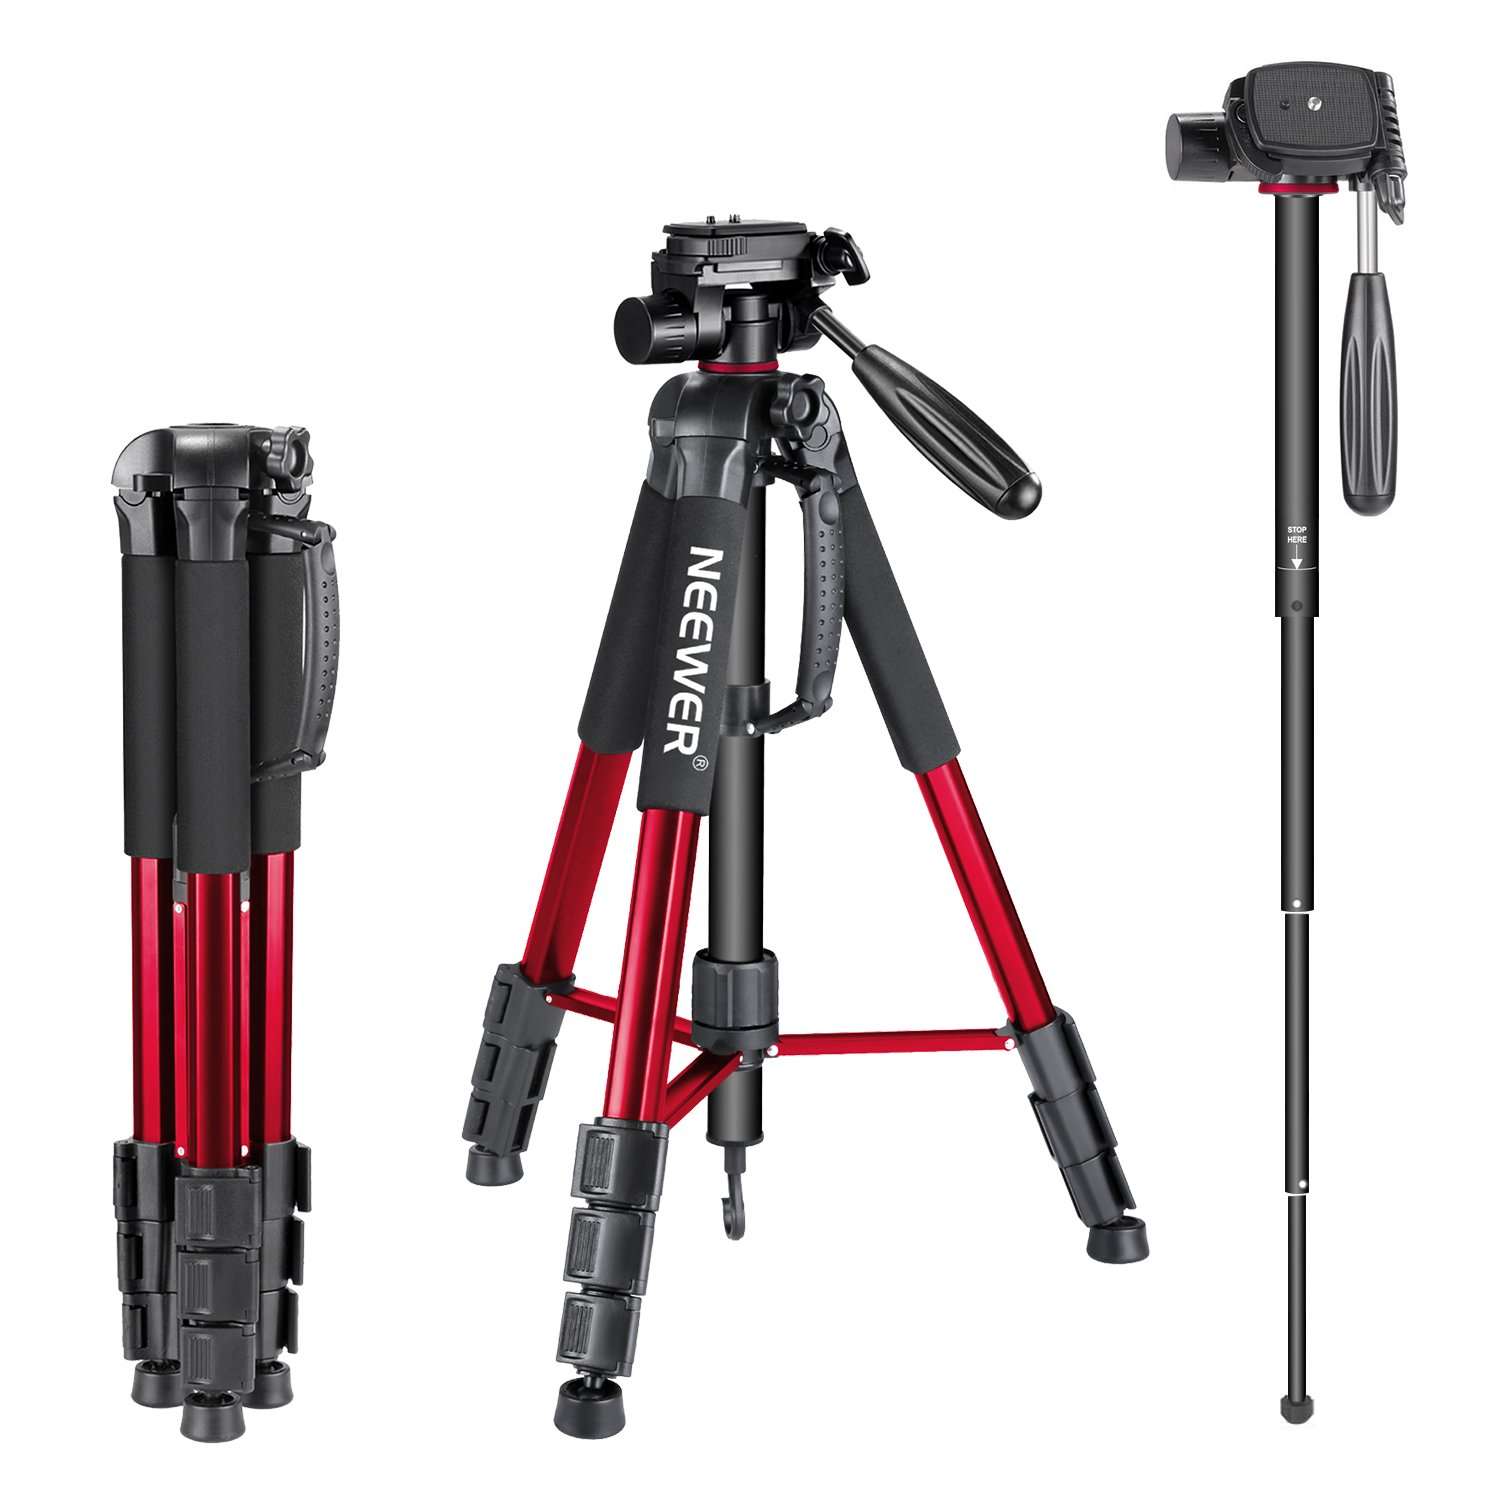 Neewer Portable 70 inches/177 Centimeters Aluminum Alloy Camera Tripod Monopod with 3-Way Swivel Pan Head, Bag for DSLR Camera, DV Video Camcorder, Load up to 8.8 pounds/4 kilograms Blue(SAB264) 10090794